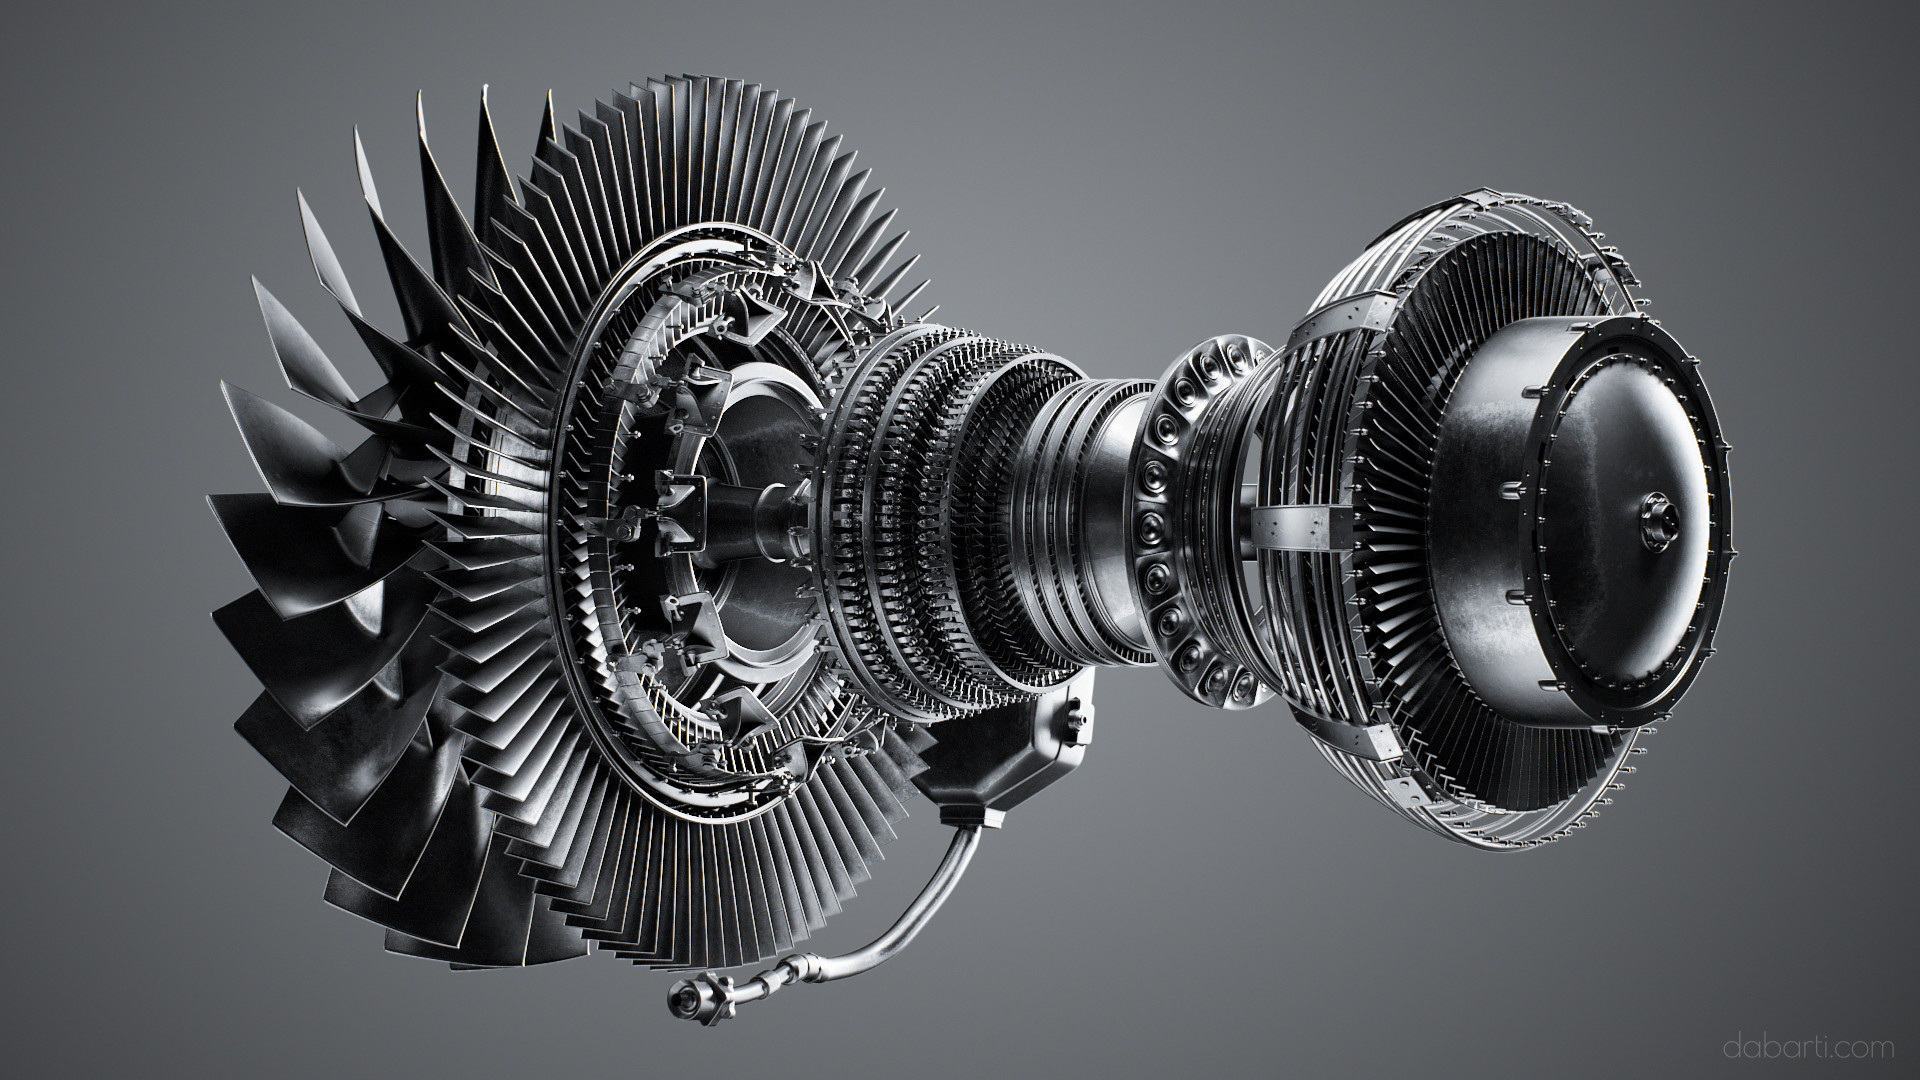 6B Heavy Duty Gas Turbine GE Energy